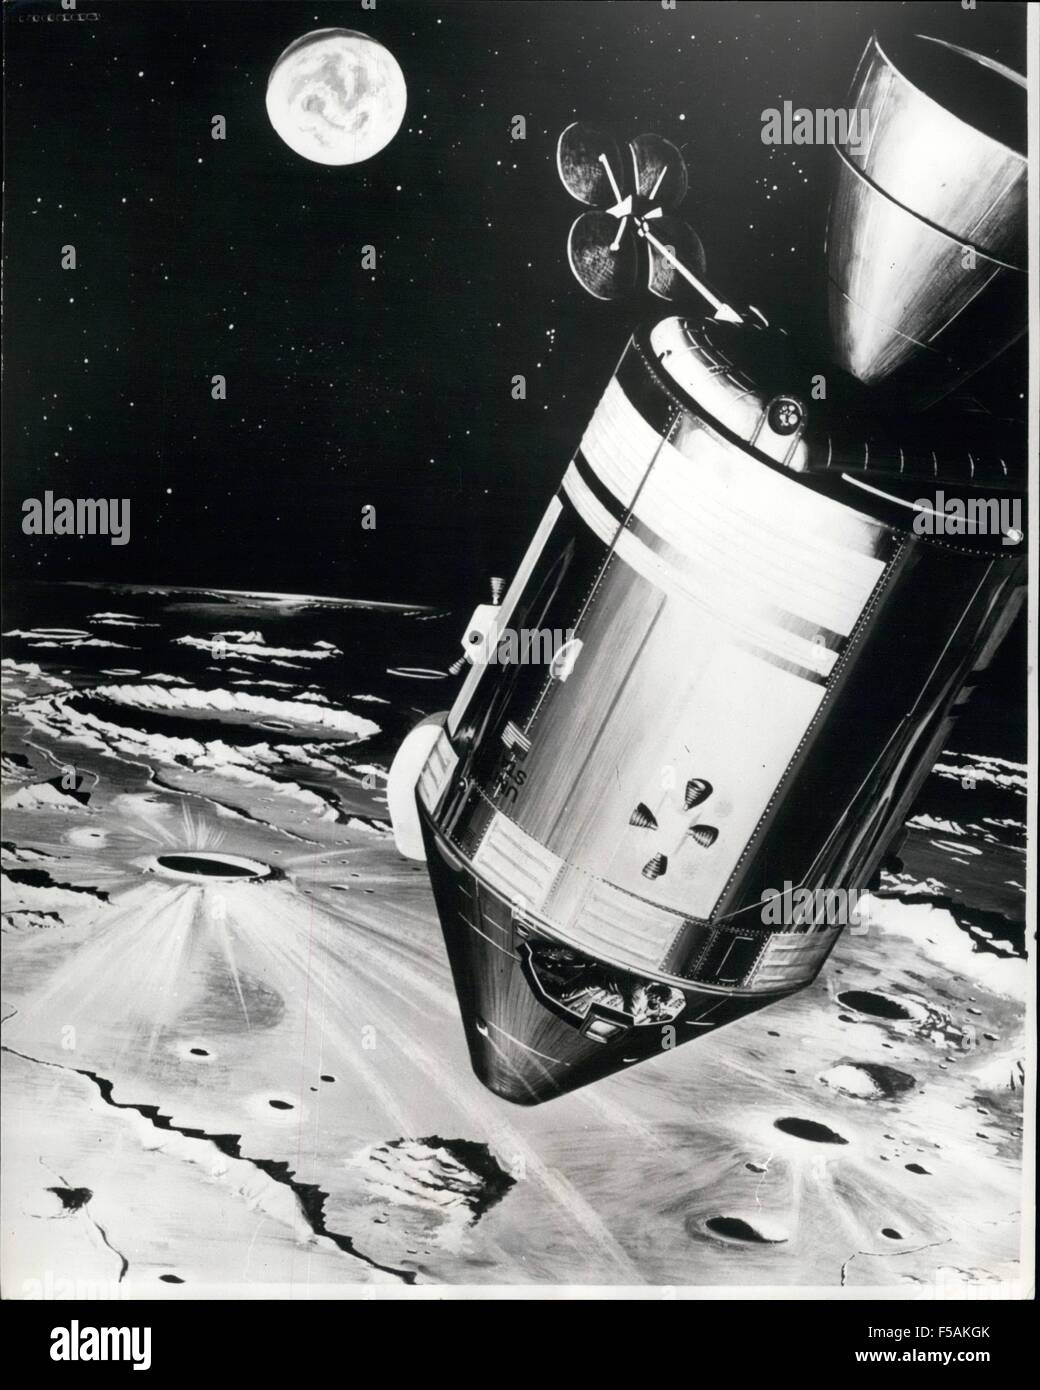 July, 1969 - Apollo 8 Moon flight; Photo Shows An artist's concept shows the Apollo 8 spacecraft as it orbits - Stock Image